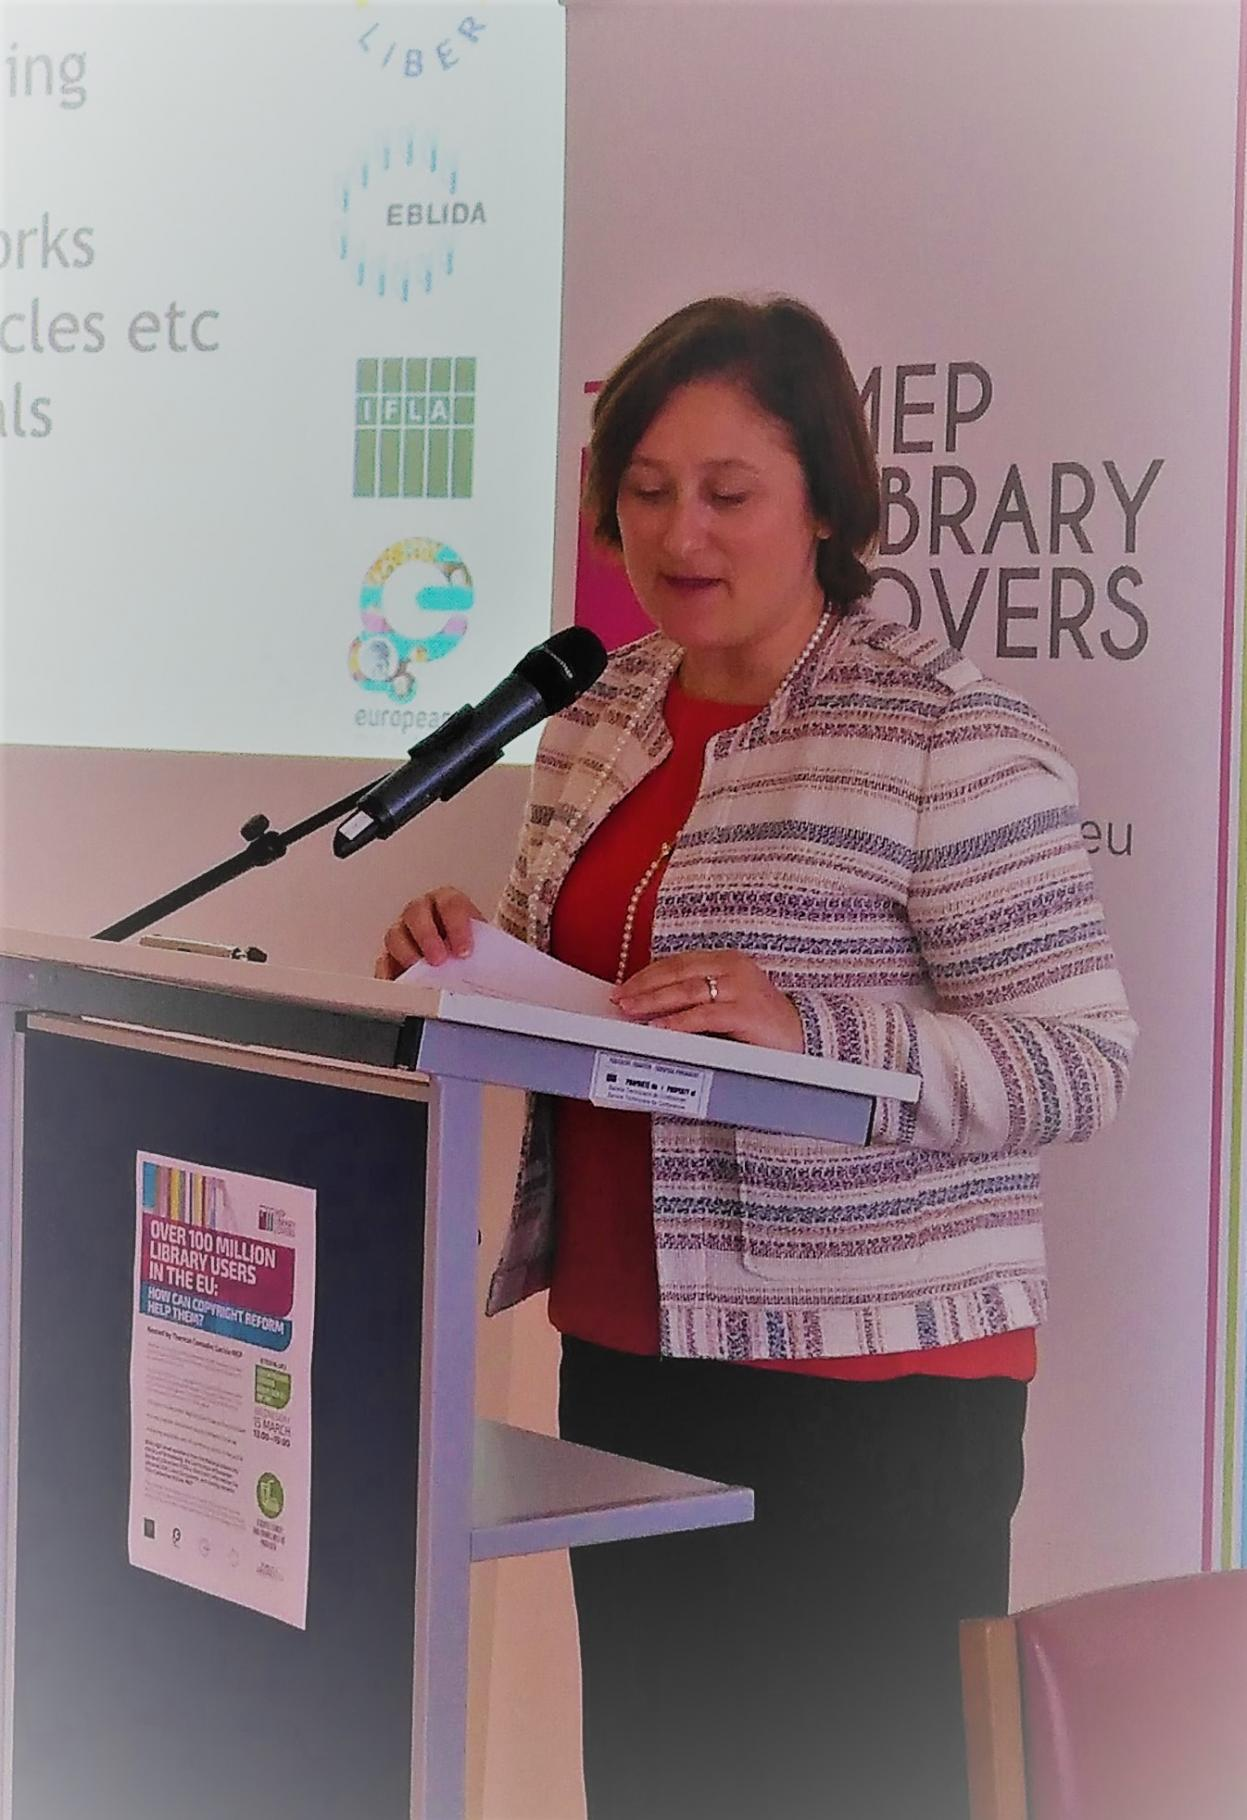 Therese Comodini Cachia MEP at Library Event in Strasbourg